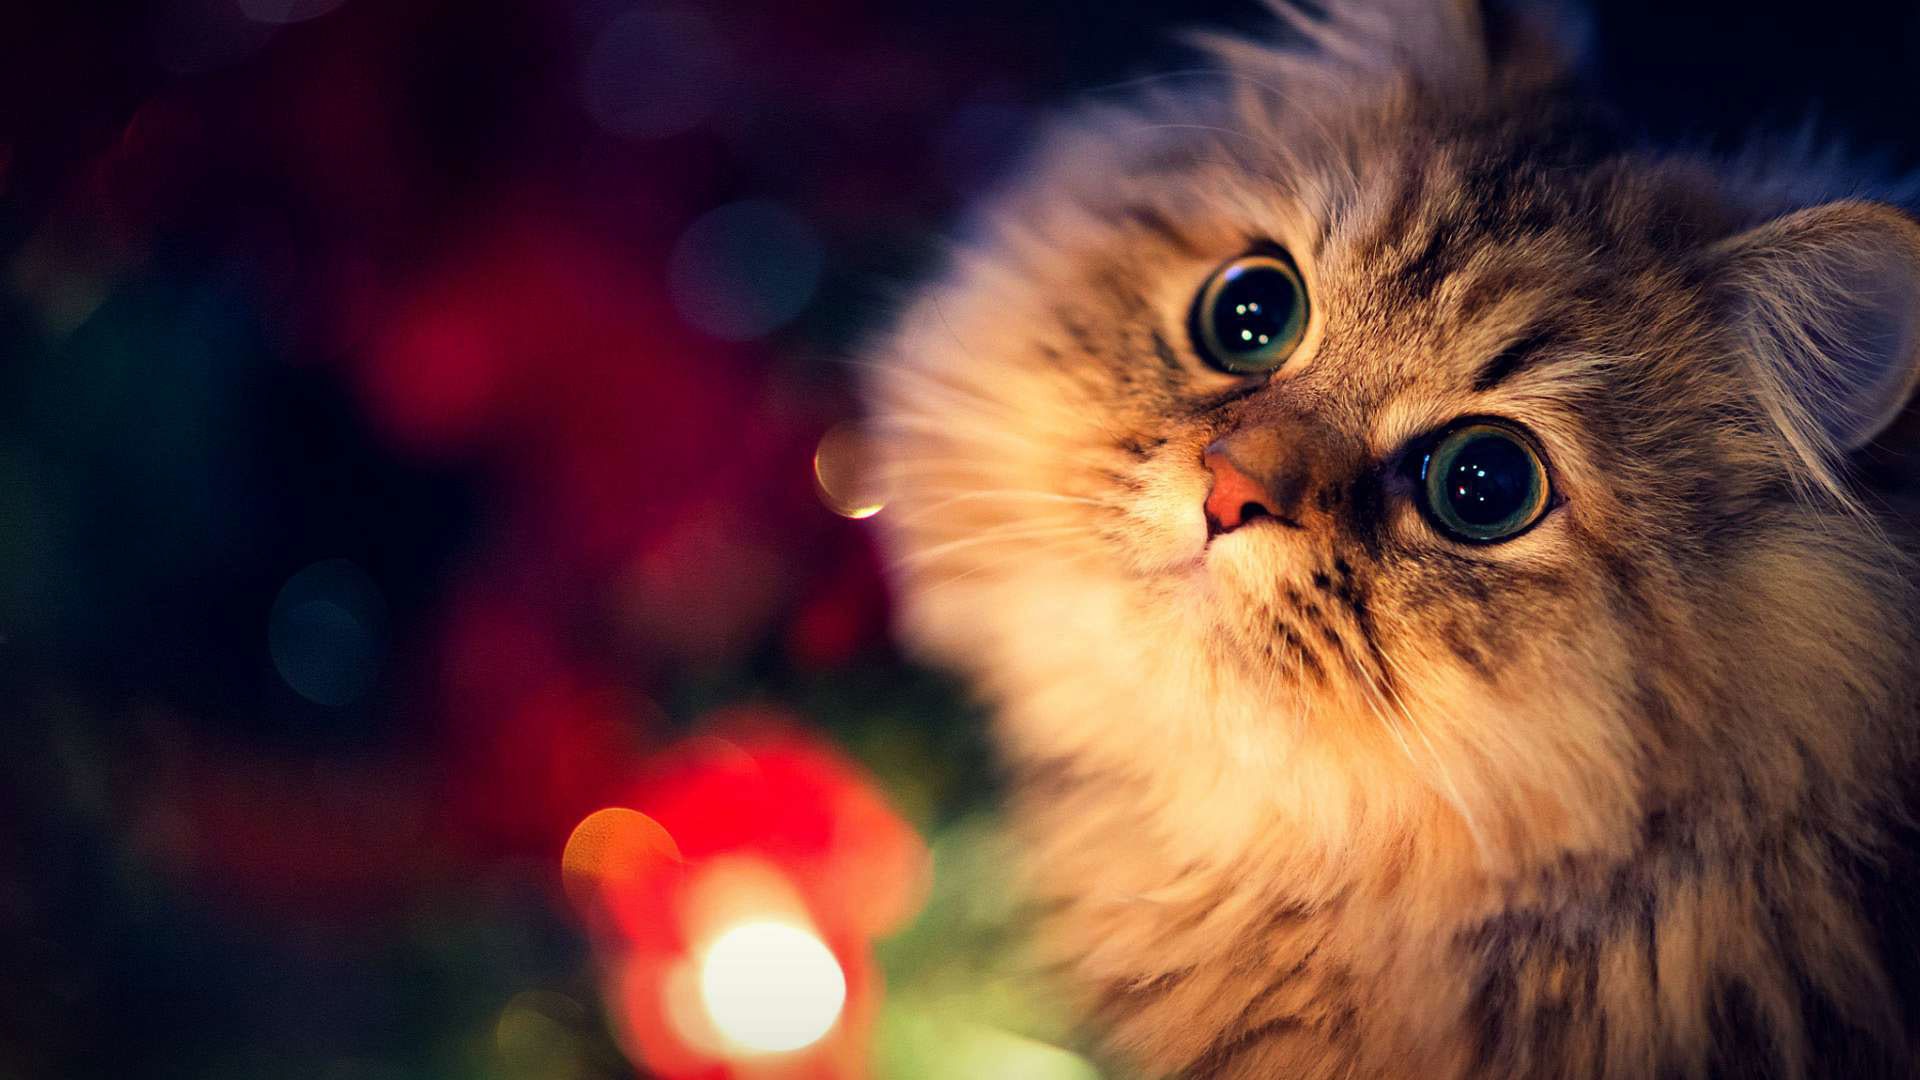 Cute Cat Background (67+ images)